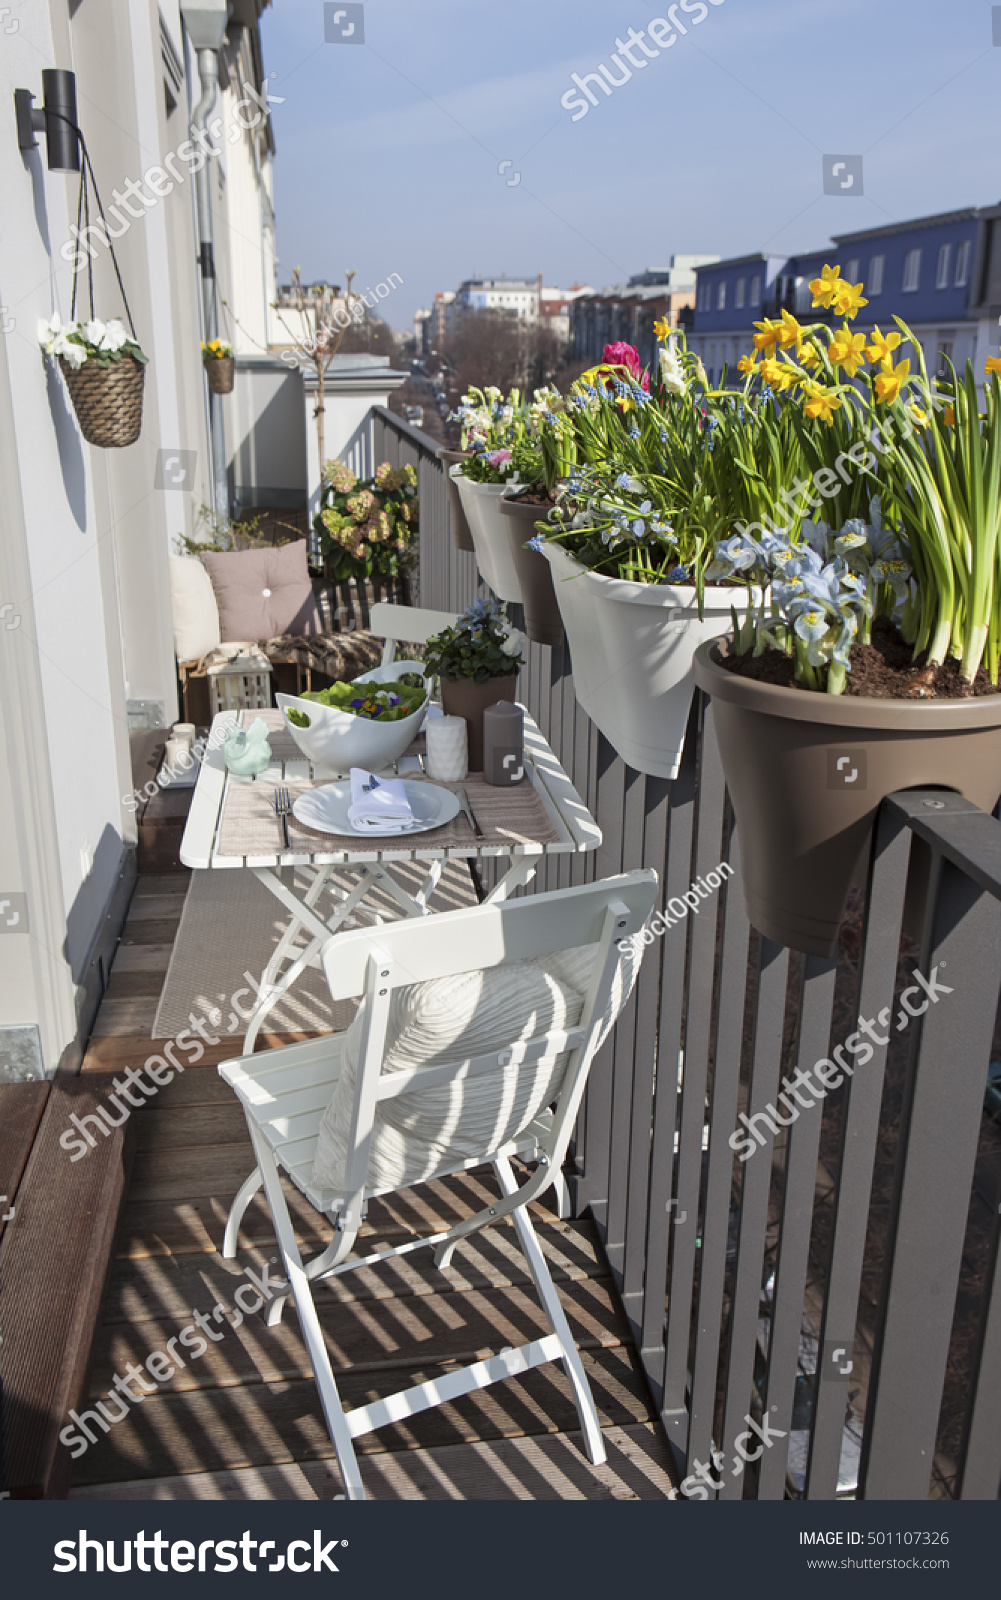 Potted spring flowers on sunny balcony stock photo royalty free potted spring flowers on sunny balcony stock photo royalty free 501107326 shutterstock mightylinksfo